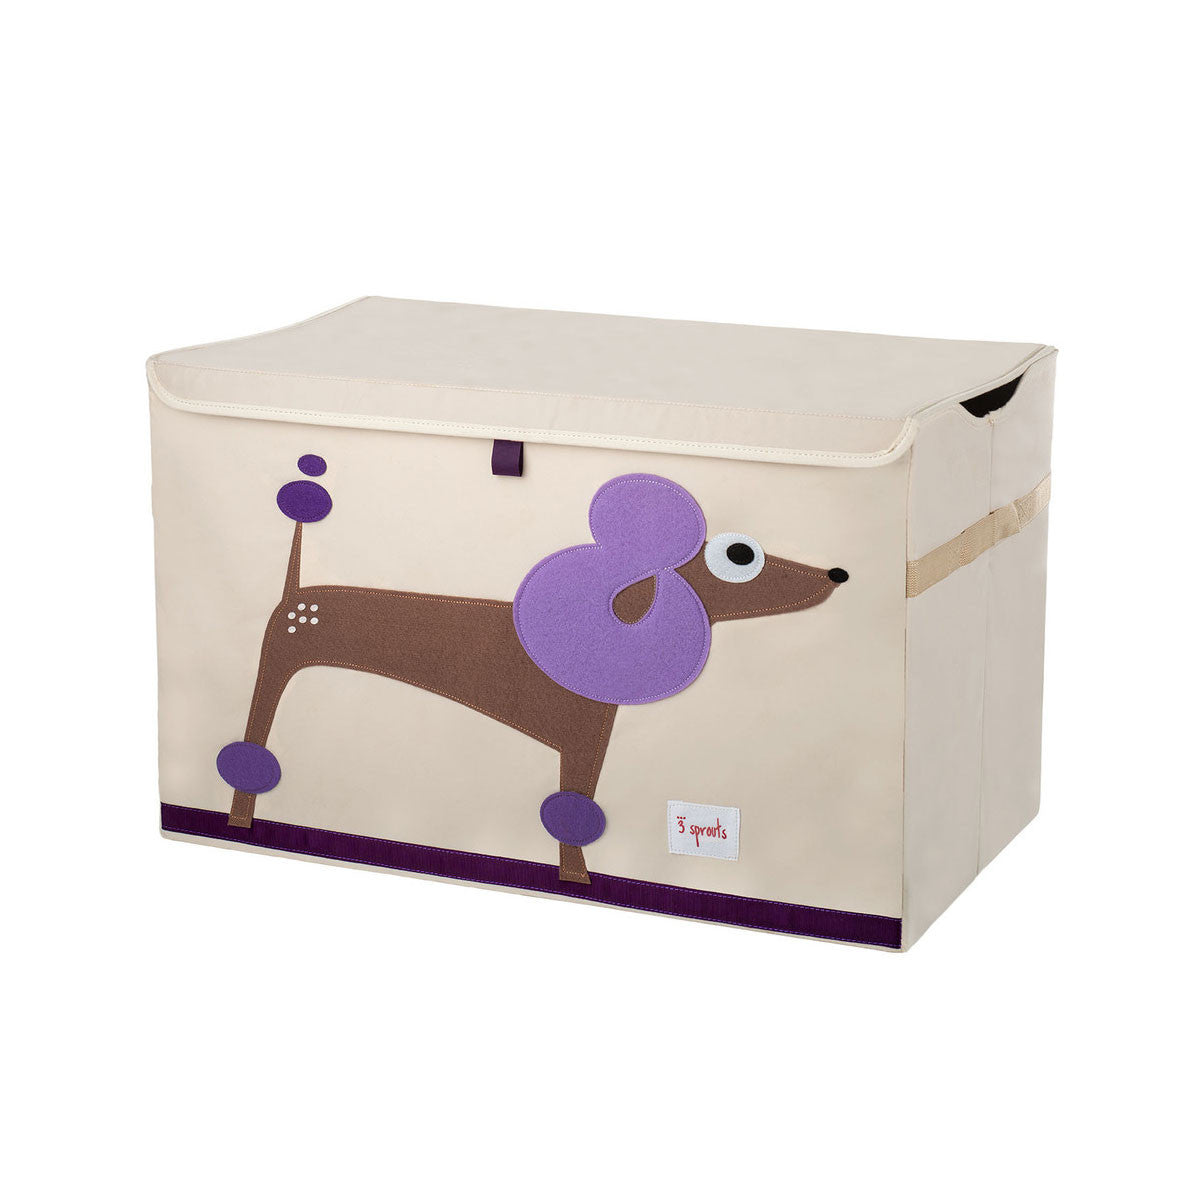 3 Sprouts Toy Chest Purple Poodle - DarlingBaby